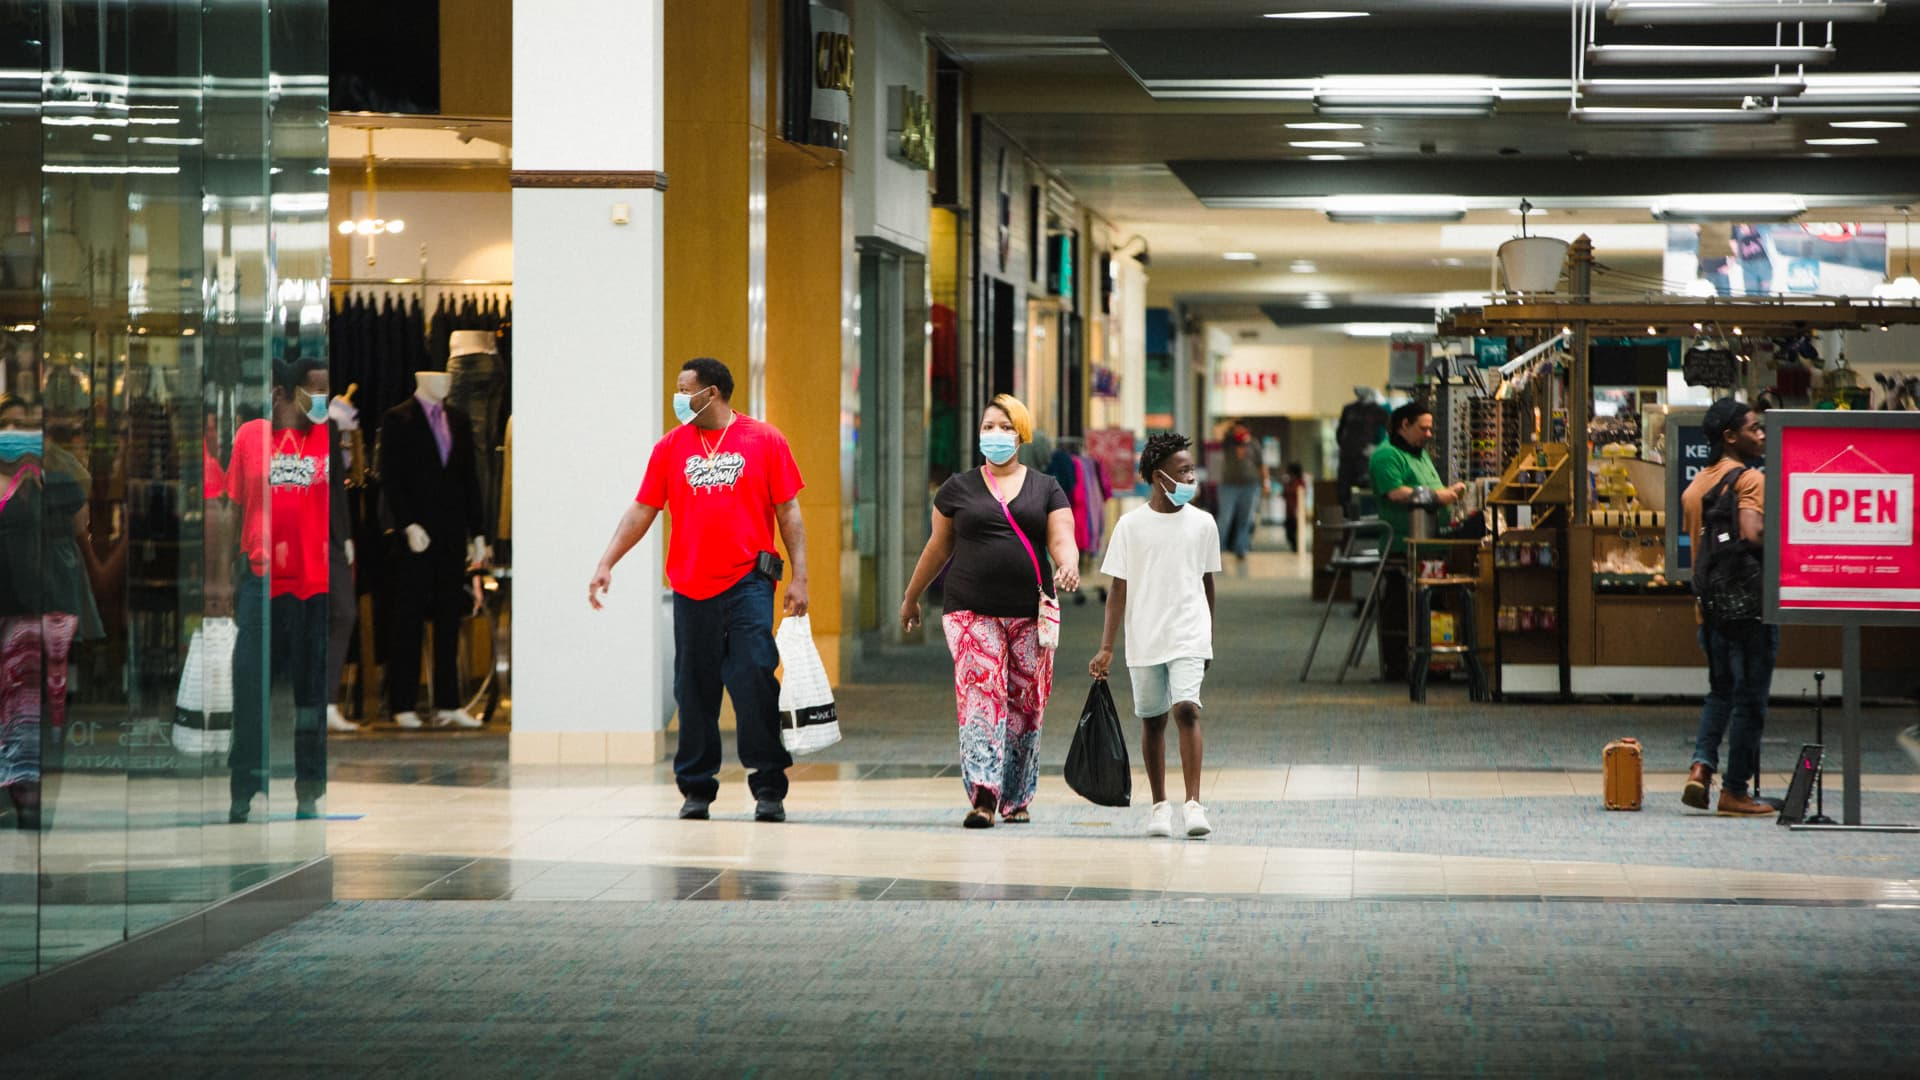 Shoppers wearing protective masks walk through the re-opened Anderson Mall in Anderson, South Carolina, on Friday, April 24, 2020.